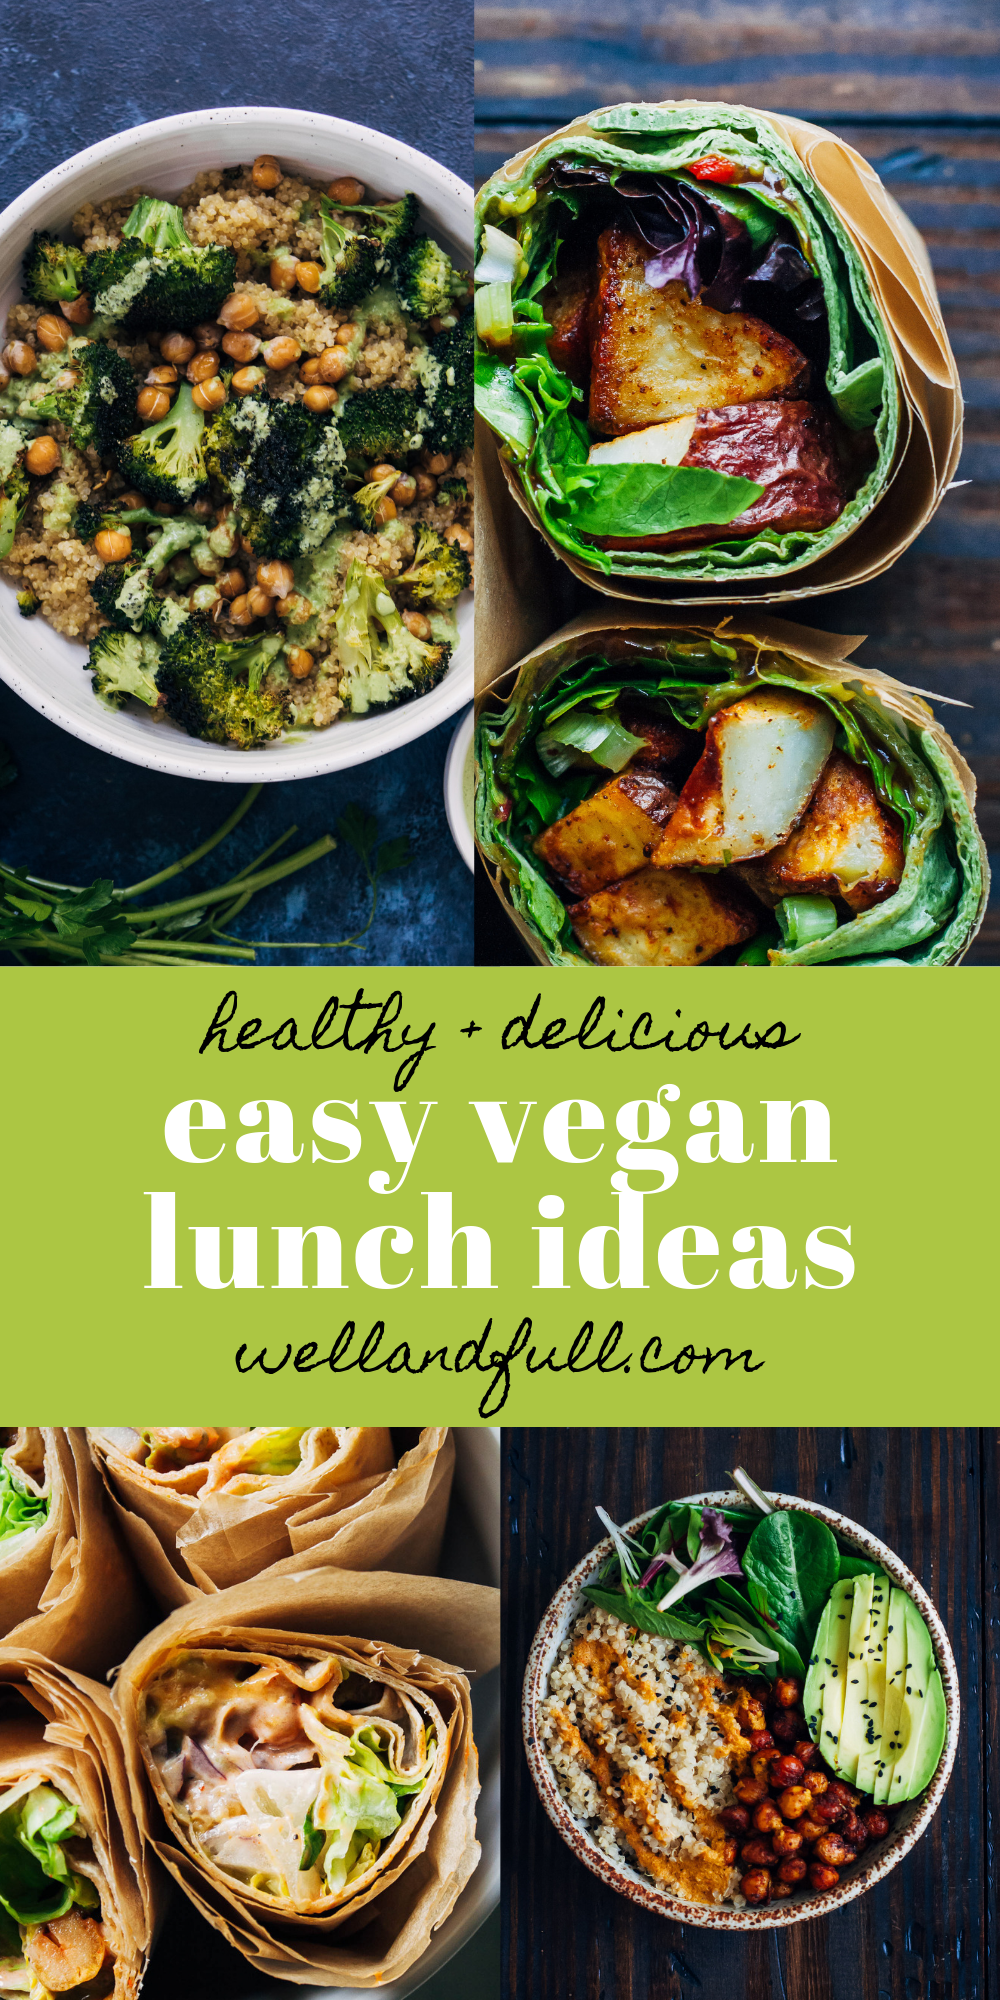 Easy Vegan Lunch Ideas | Well and Full | #vegan #recipes #healthy #easy